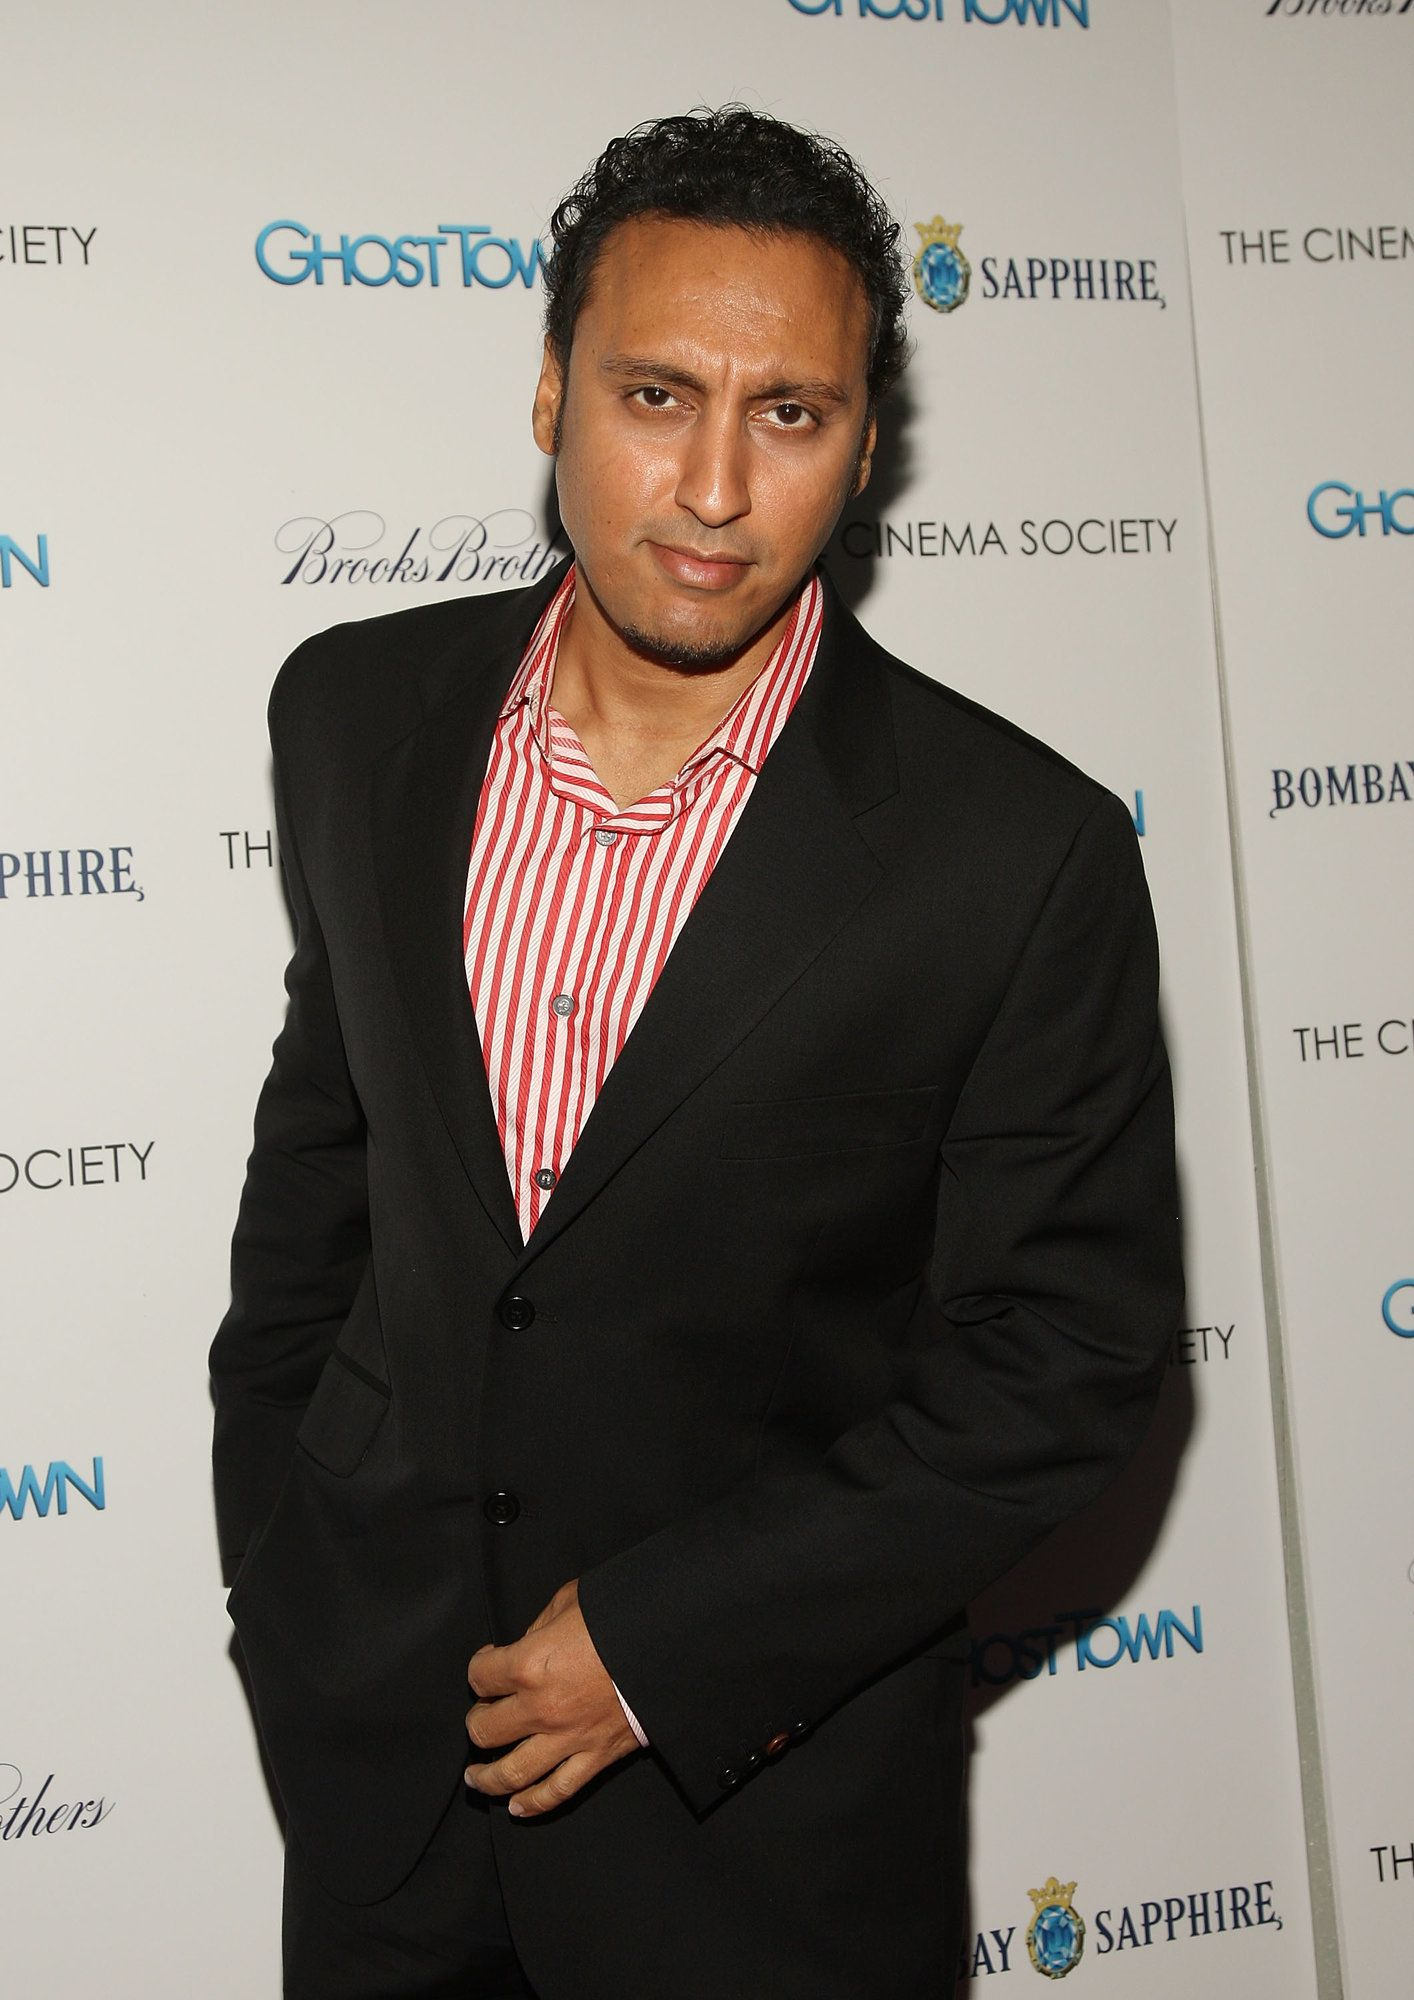 NEW YORK - SEPTEMBER 15:  Actor Aasif Mandvi attends a special screening hosted by The Cinema Society and Brooks Brothers with Bombay Sapphire at The IFC Center on September 15, 2008 in New York City.  (Photo by Stephen Lovekin/Getty Images)